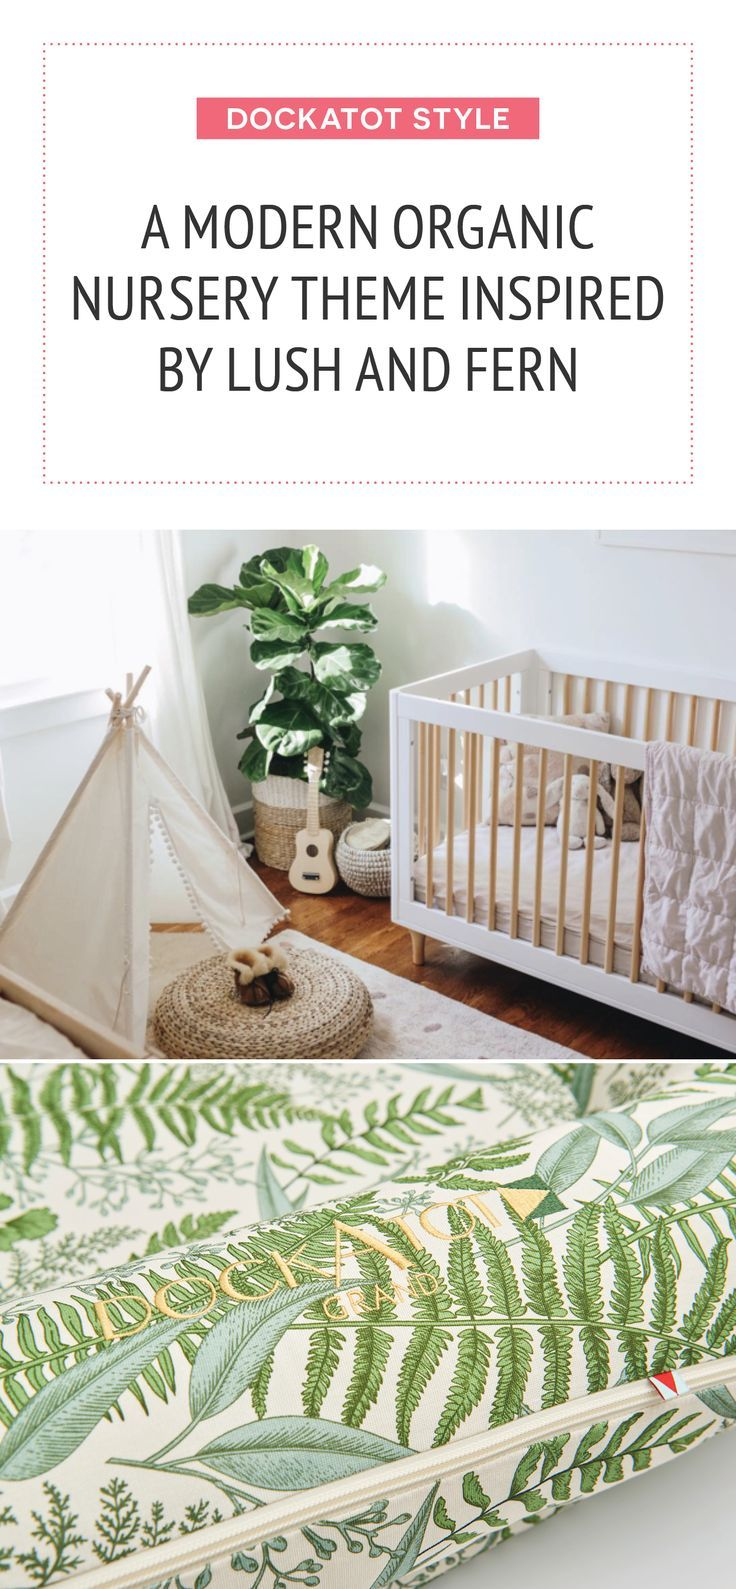 Creating A Nursery Theme Inspired By Your Baby Ideas Pinterest Design And Themes